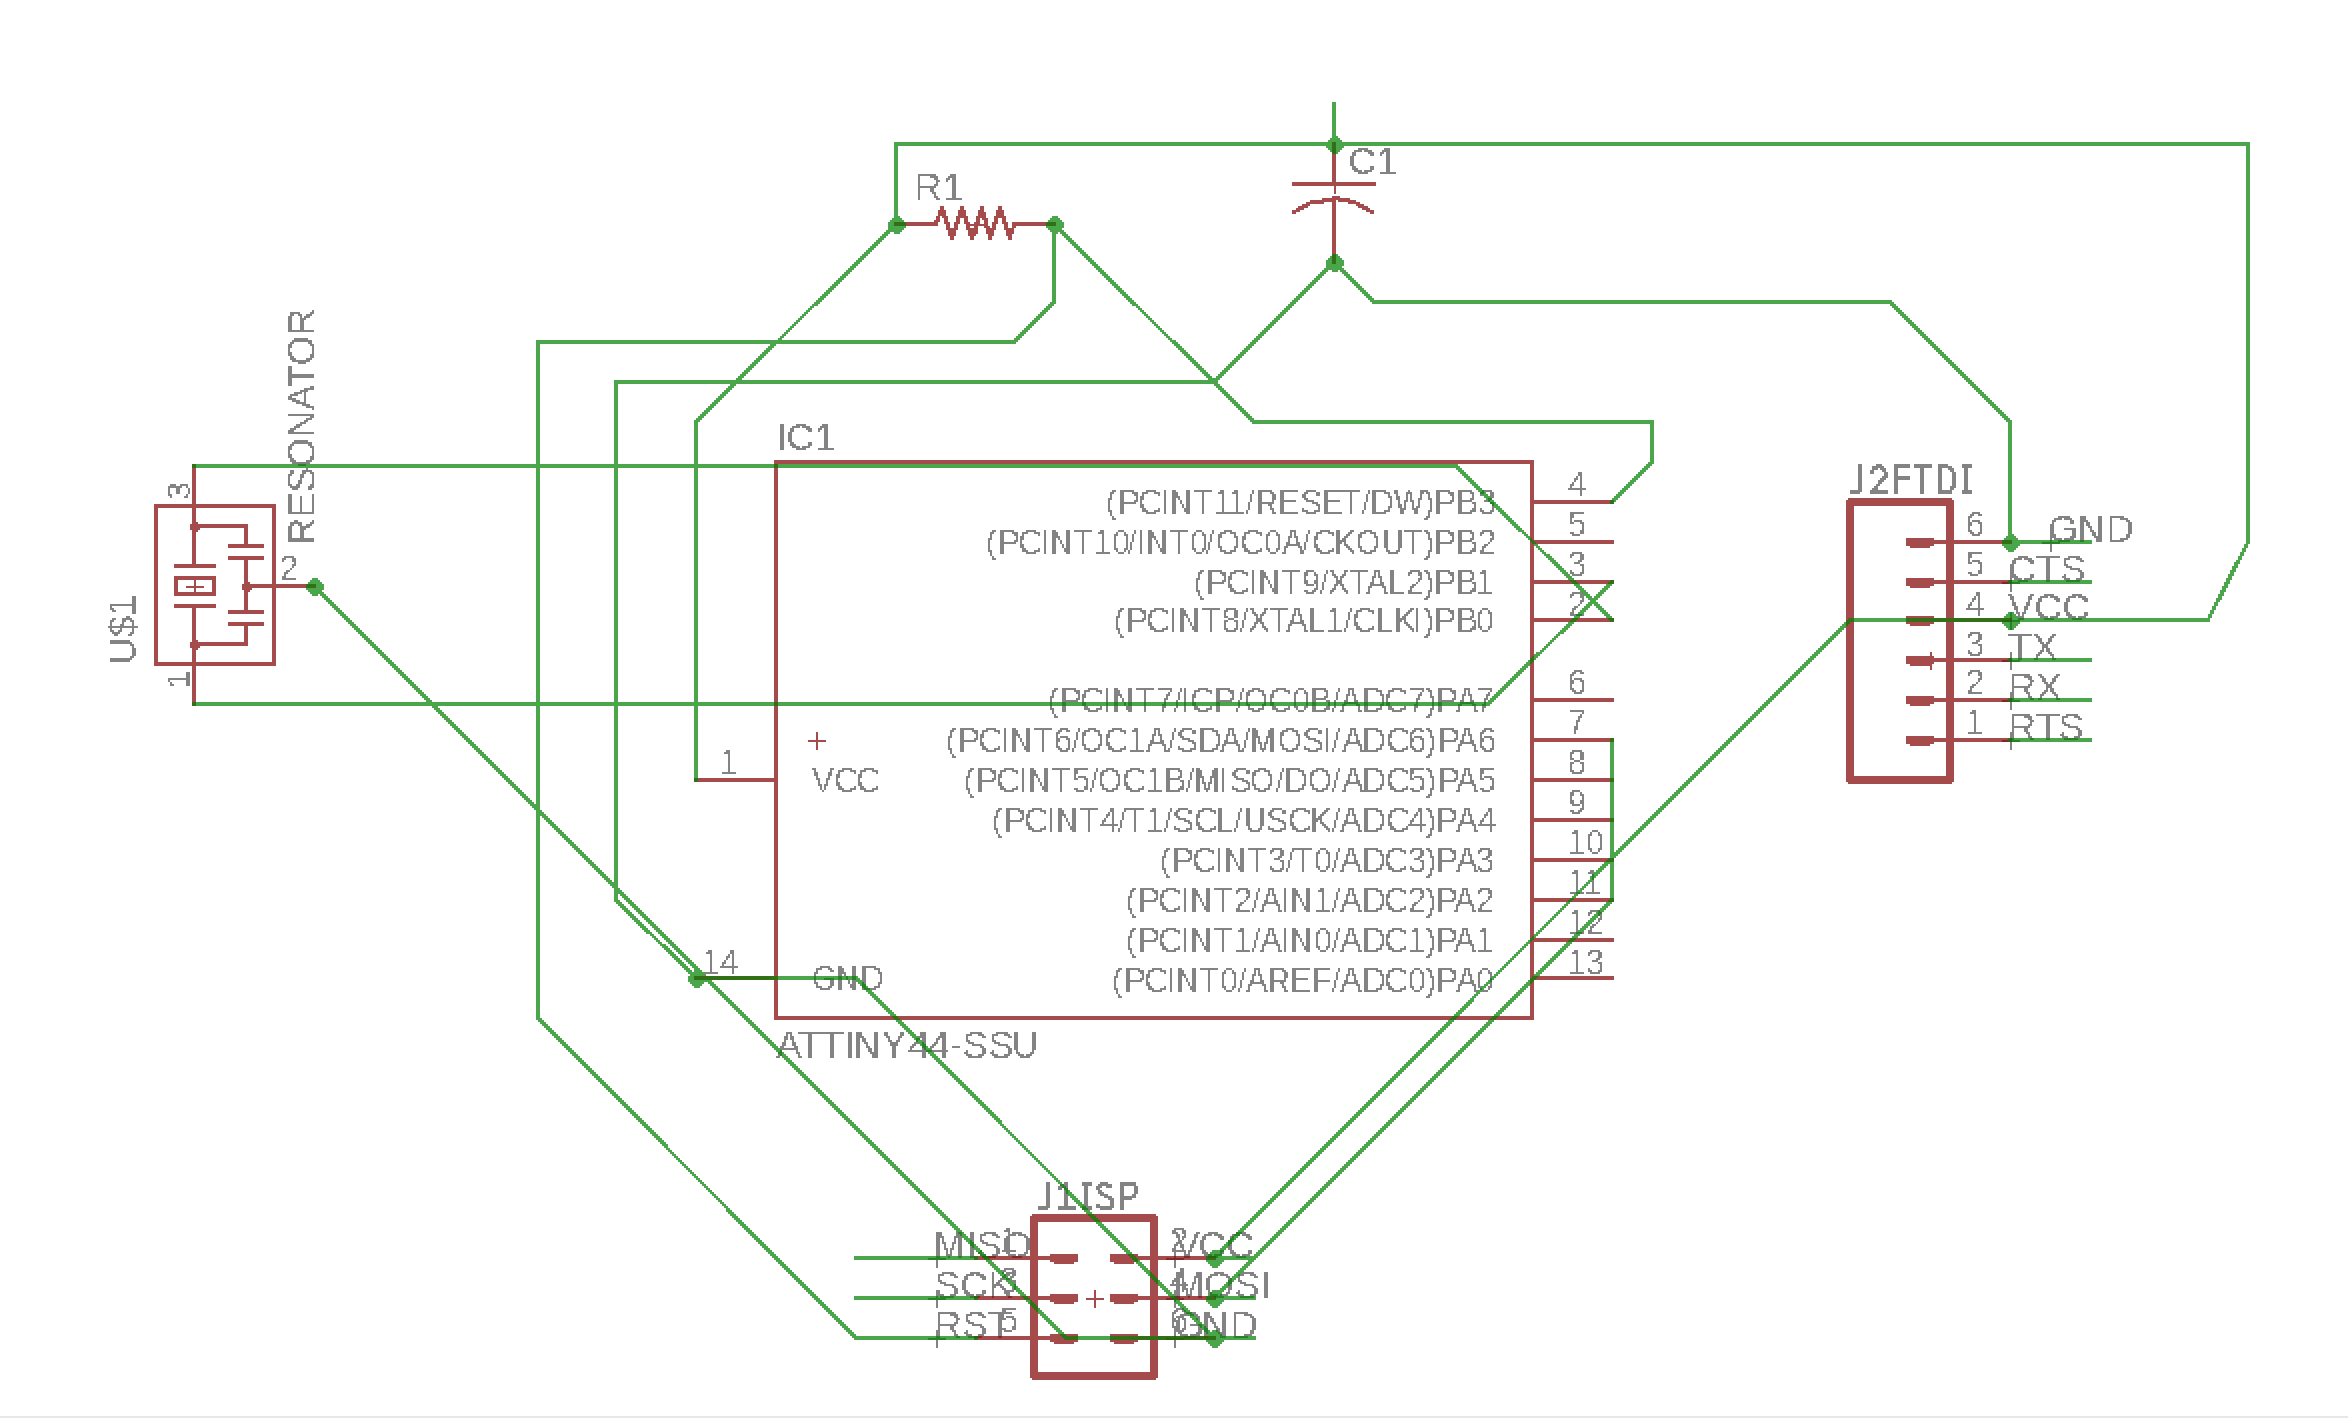 Week 7 Redraw The Echo Hello World Board With Extra Components Attiny2313 Based Lan Cable Tester Schematic Then I Added New A Switch And Led There Are Two Free Pins On Attiny Pb2 Pa7 So Ill Connect Each Of These To One